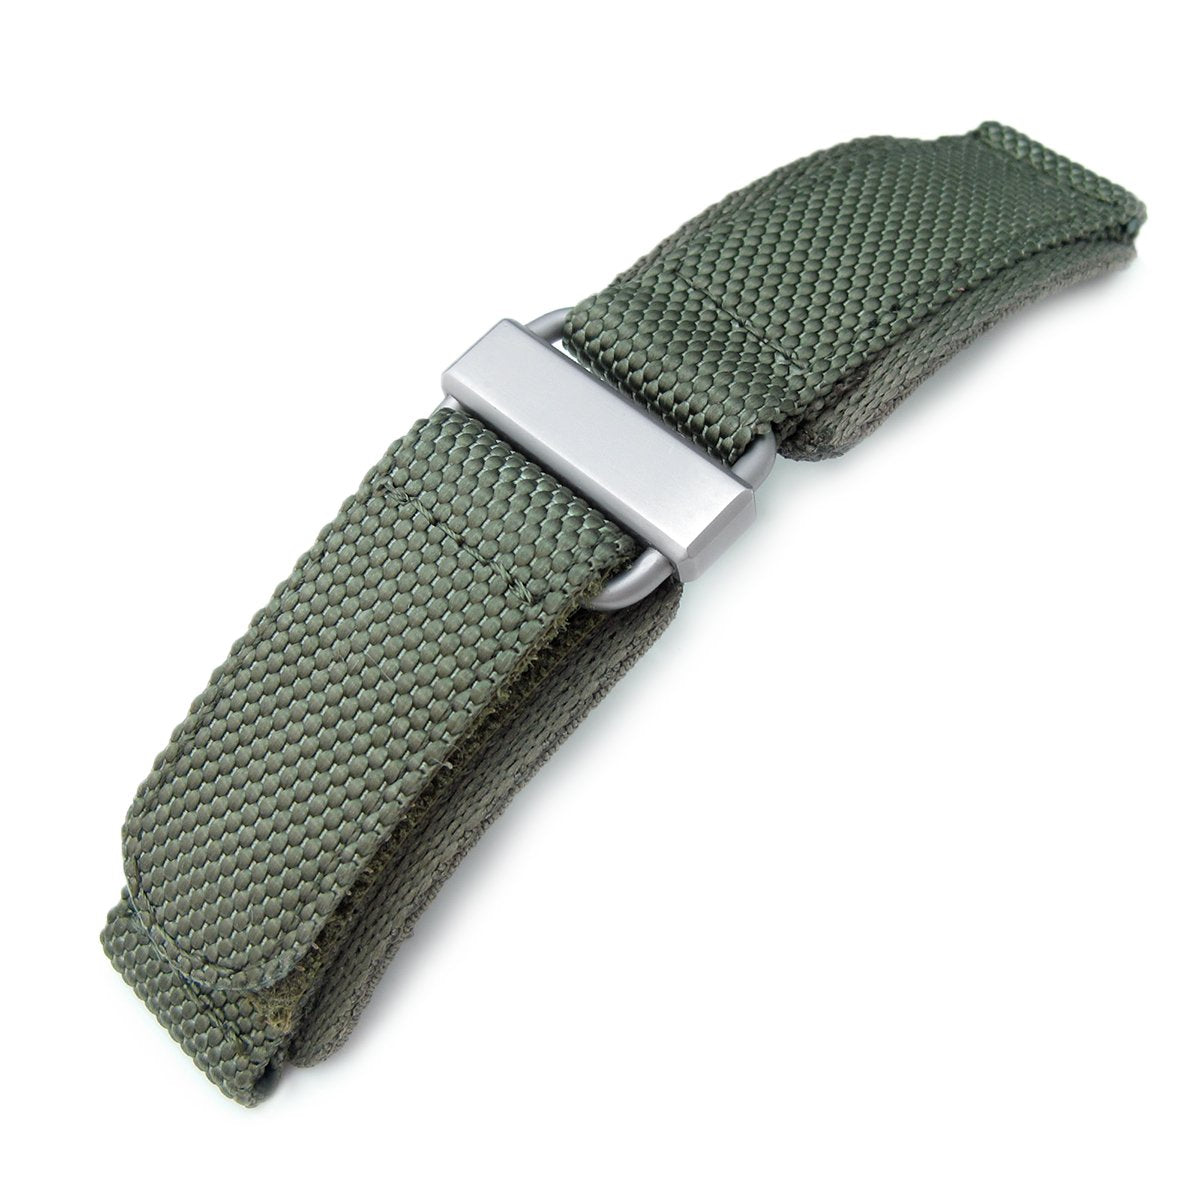 22mm MiLTAT Honeycomb Military Green Nylon Velcro Fastener Watch Strap Brushed Stainless Buckle Strapcode Watch Bands